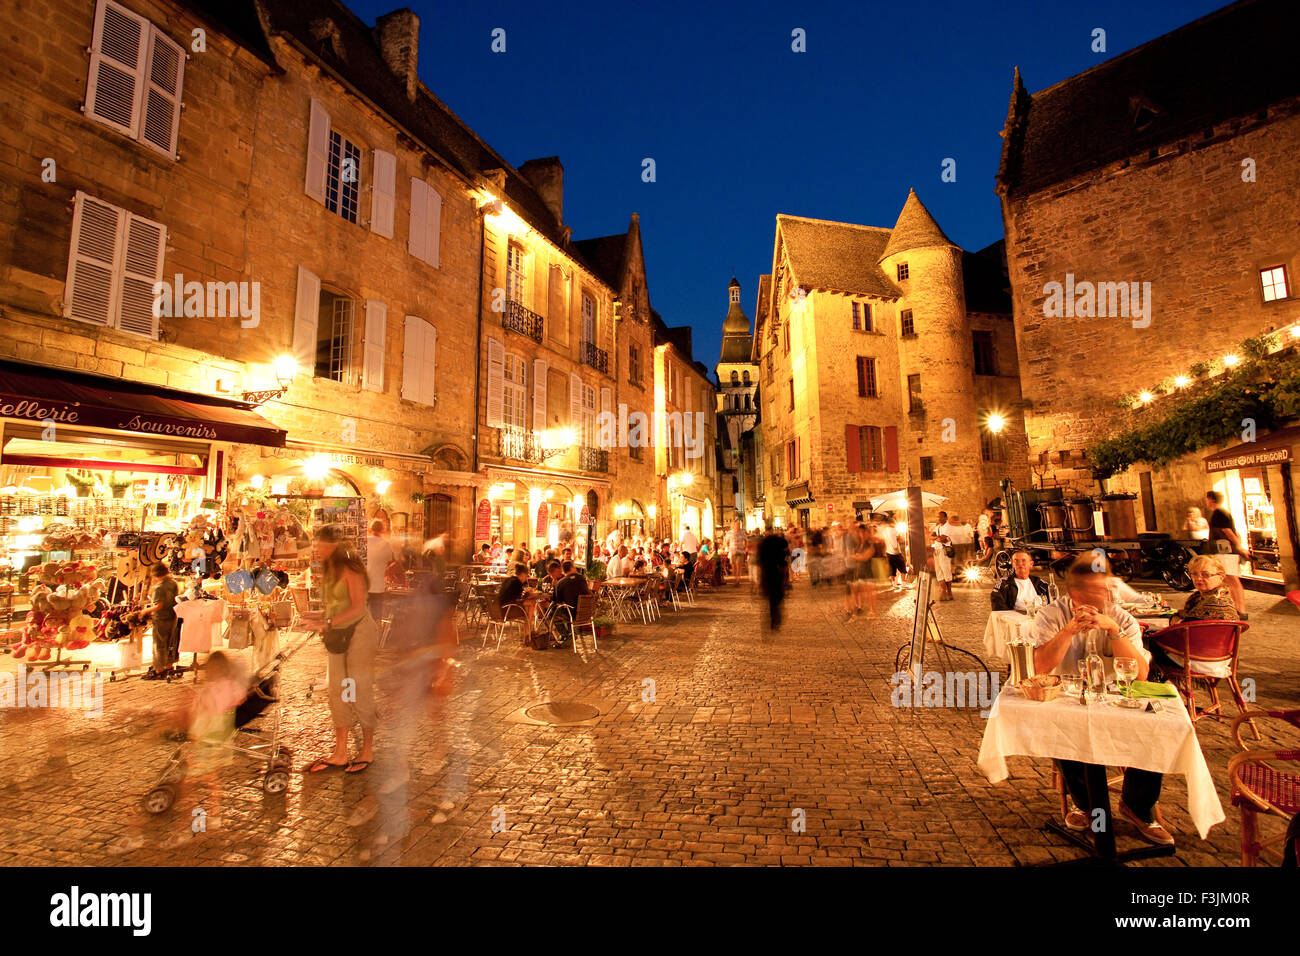 The busy medieval town of Sarlat by night, Dordogne, France. - Stock Image